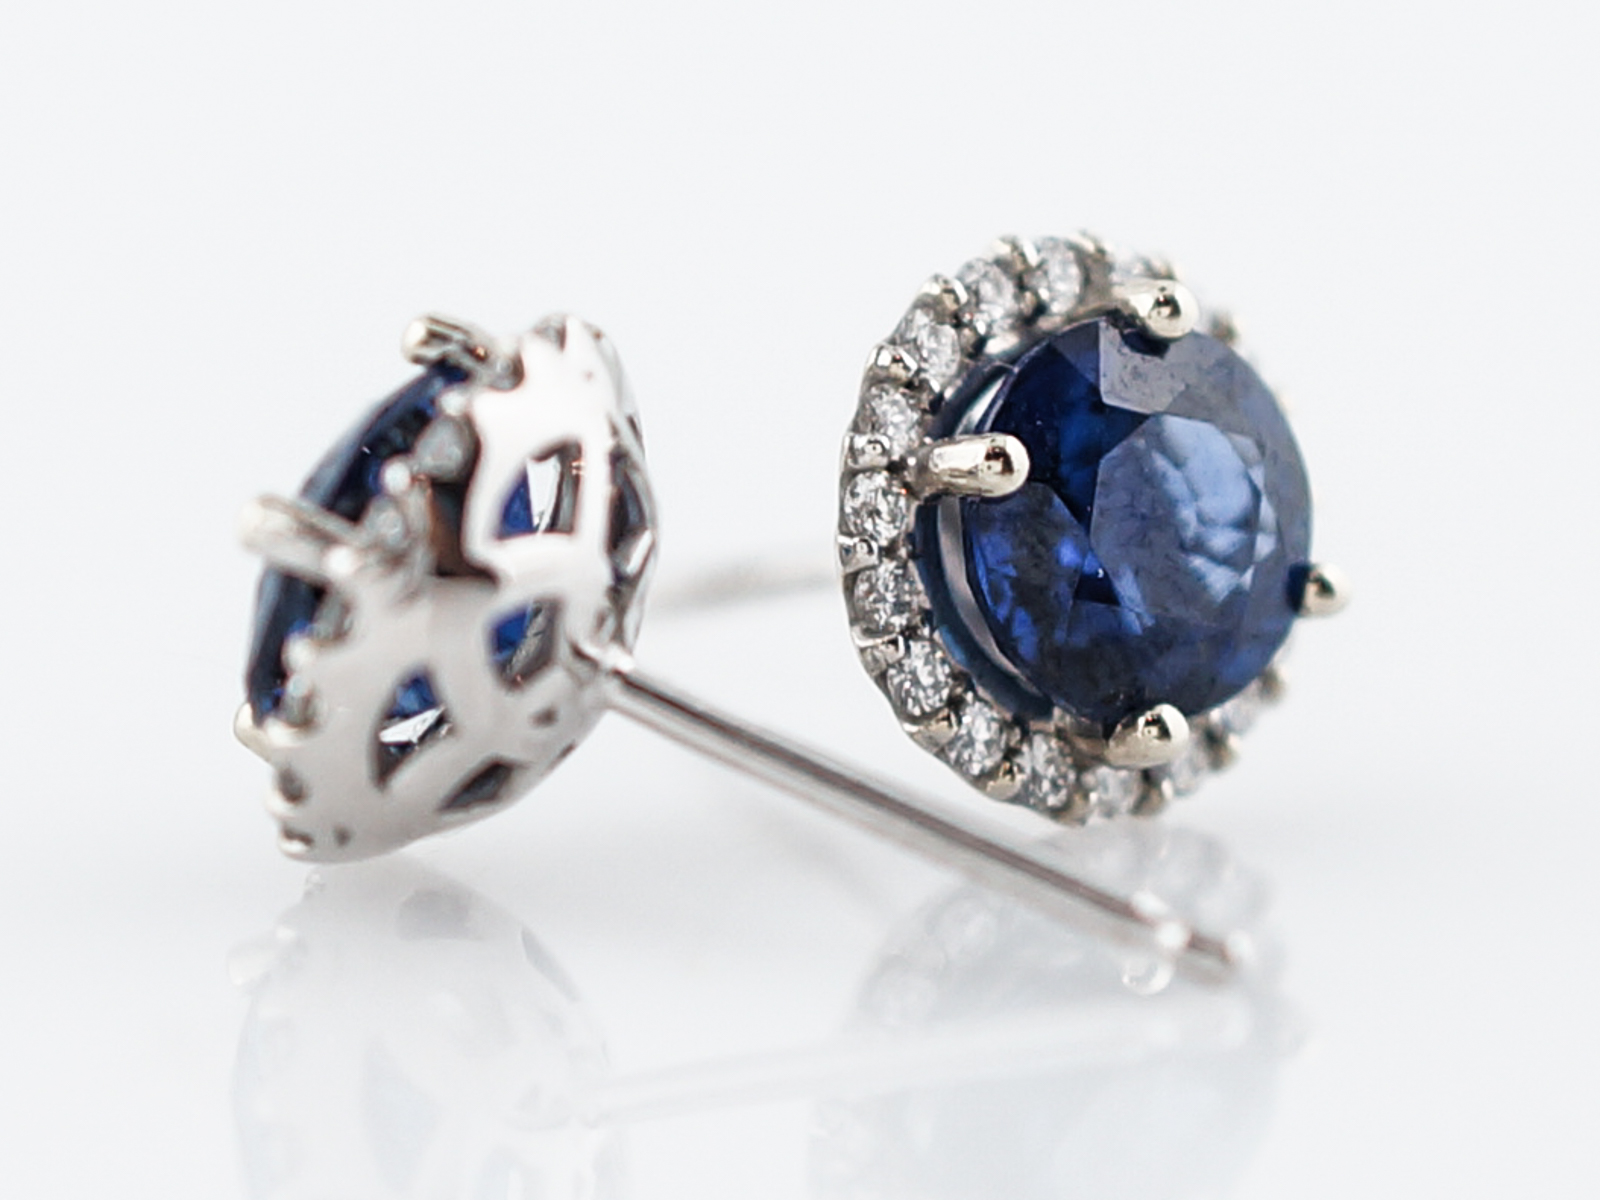 Modern Earrings 1.80 Round Cut Sapphires in 14k White Gold -2